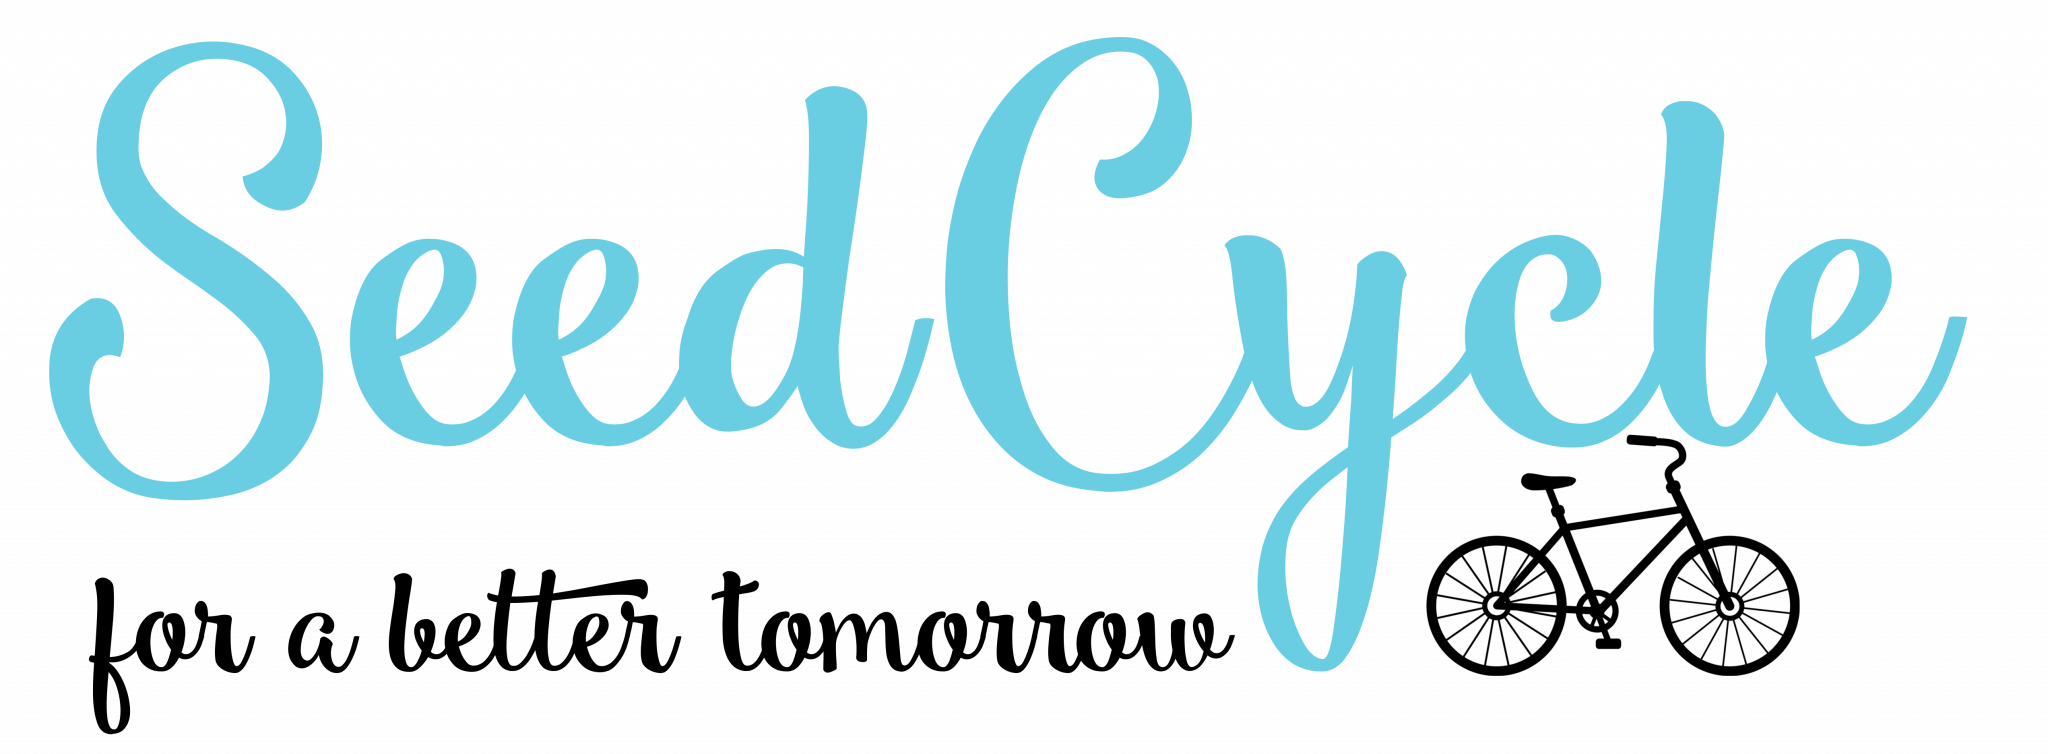 SeedCycleLogo